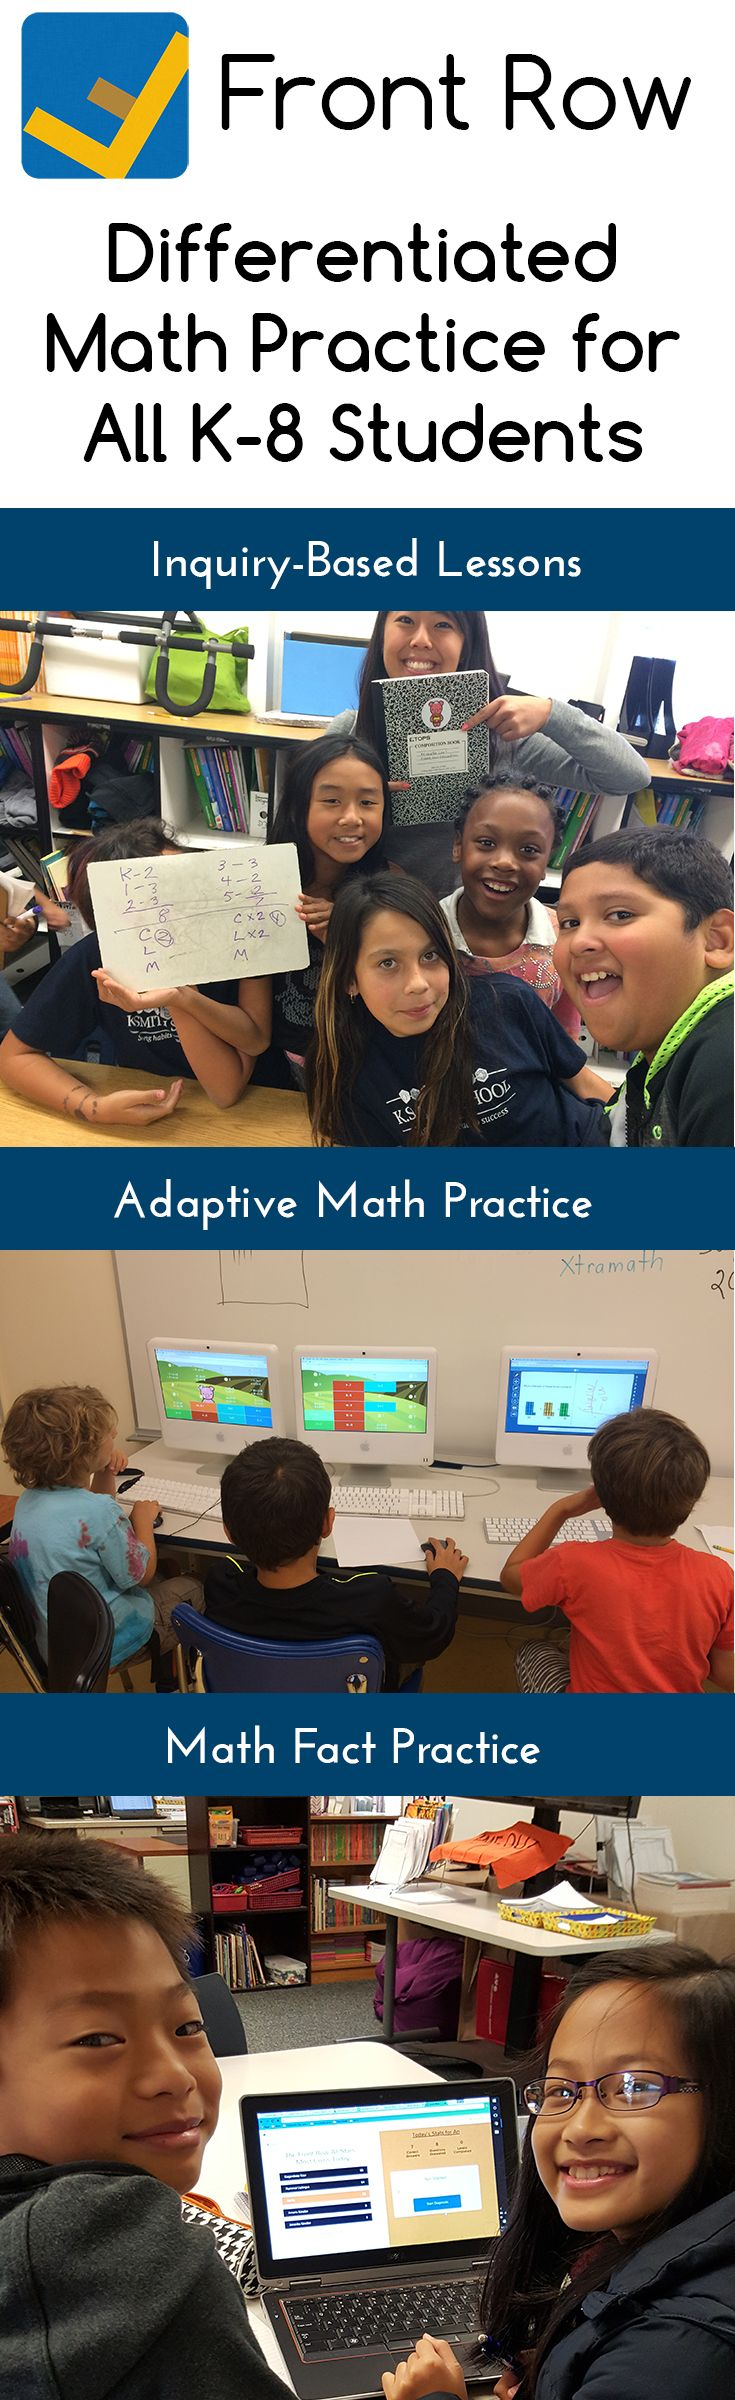 Front Row's personalized and adaptive math platform will help you differentiate learning for all learners in your classroom. Your students will love it! #differentiation. And it's free!  www.frontrowed.com